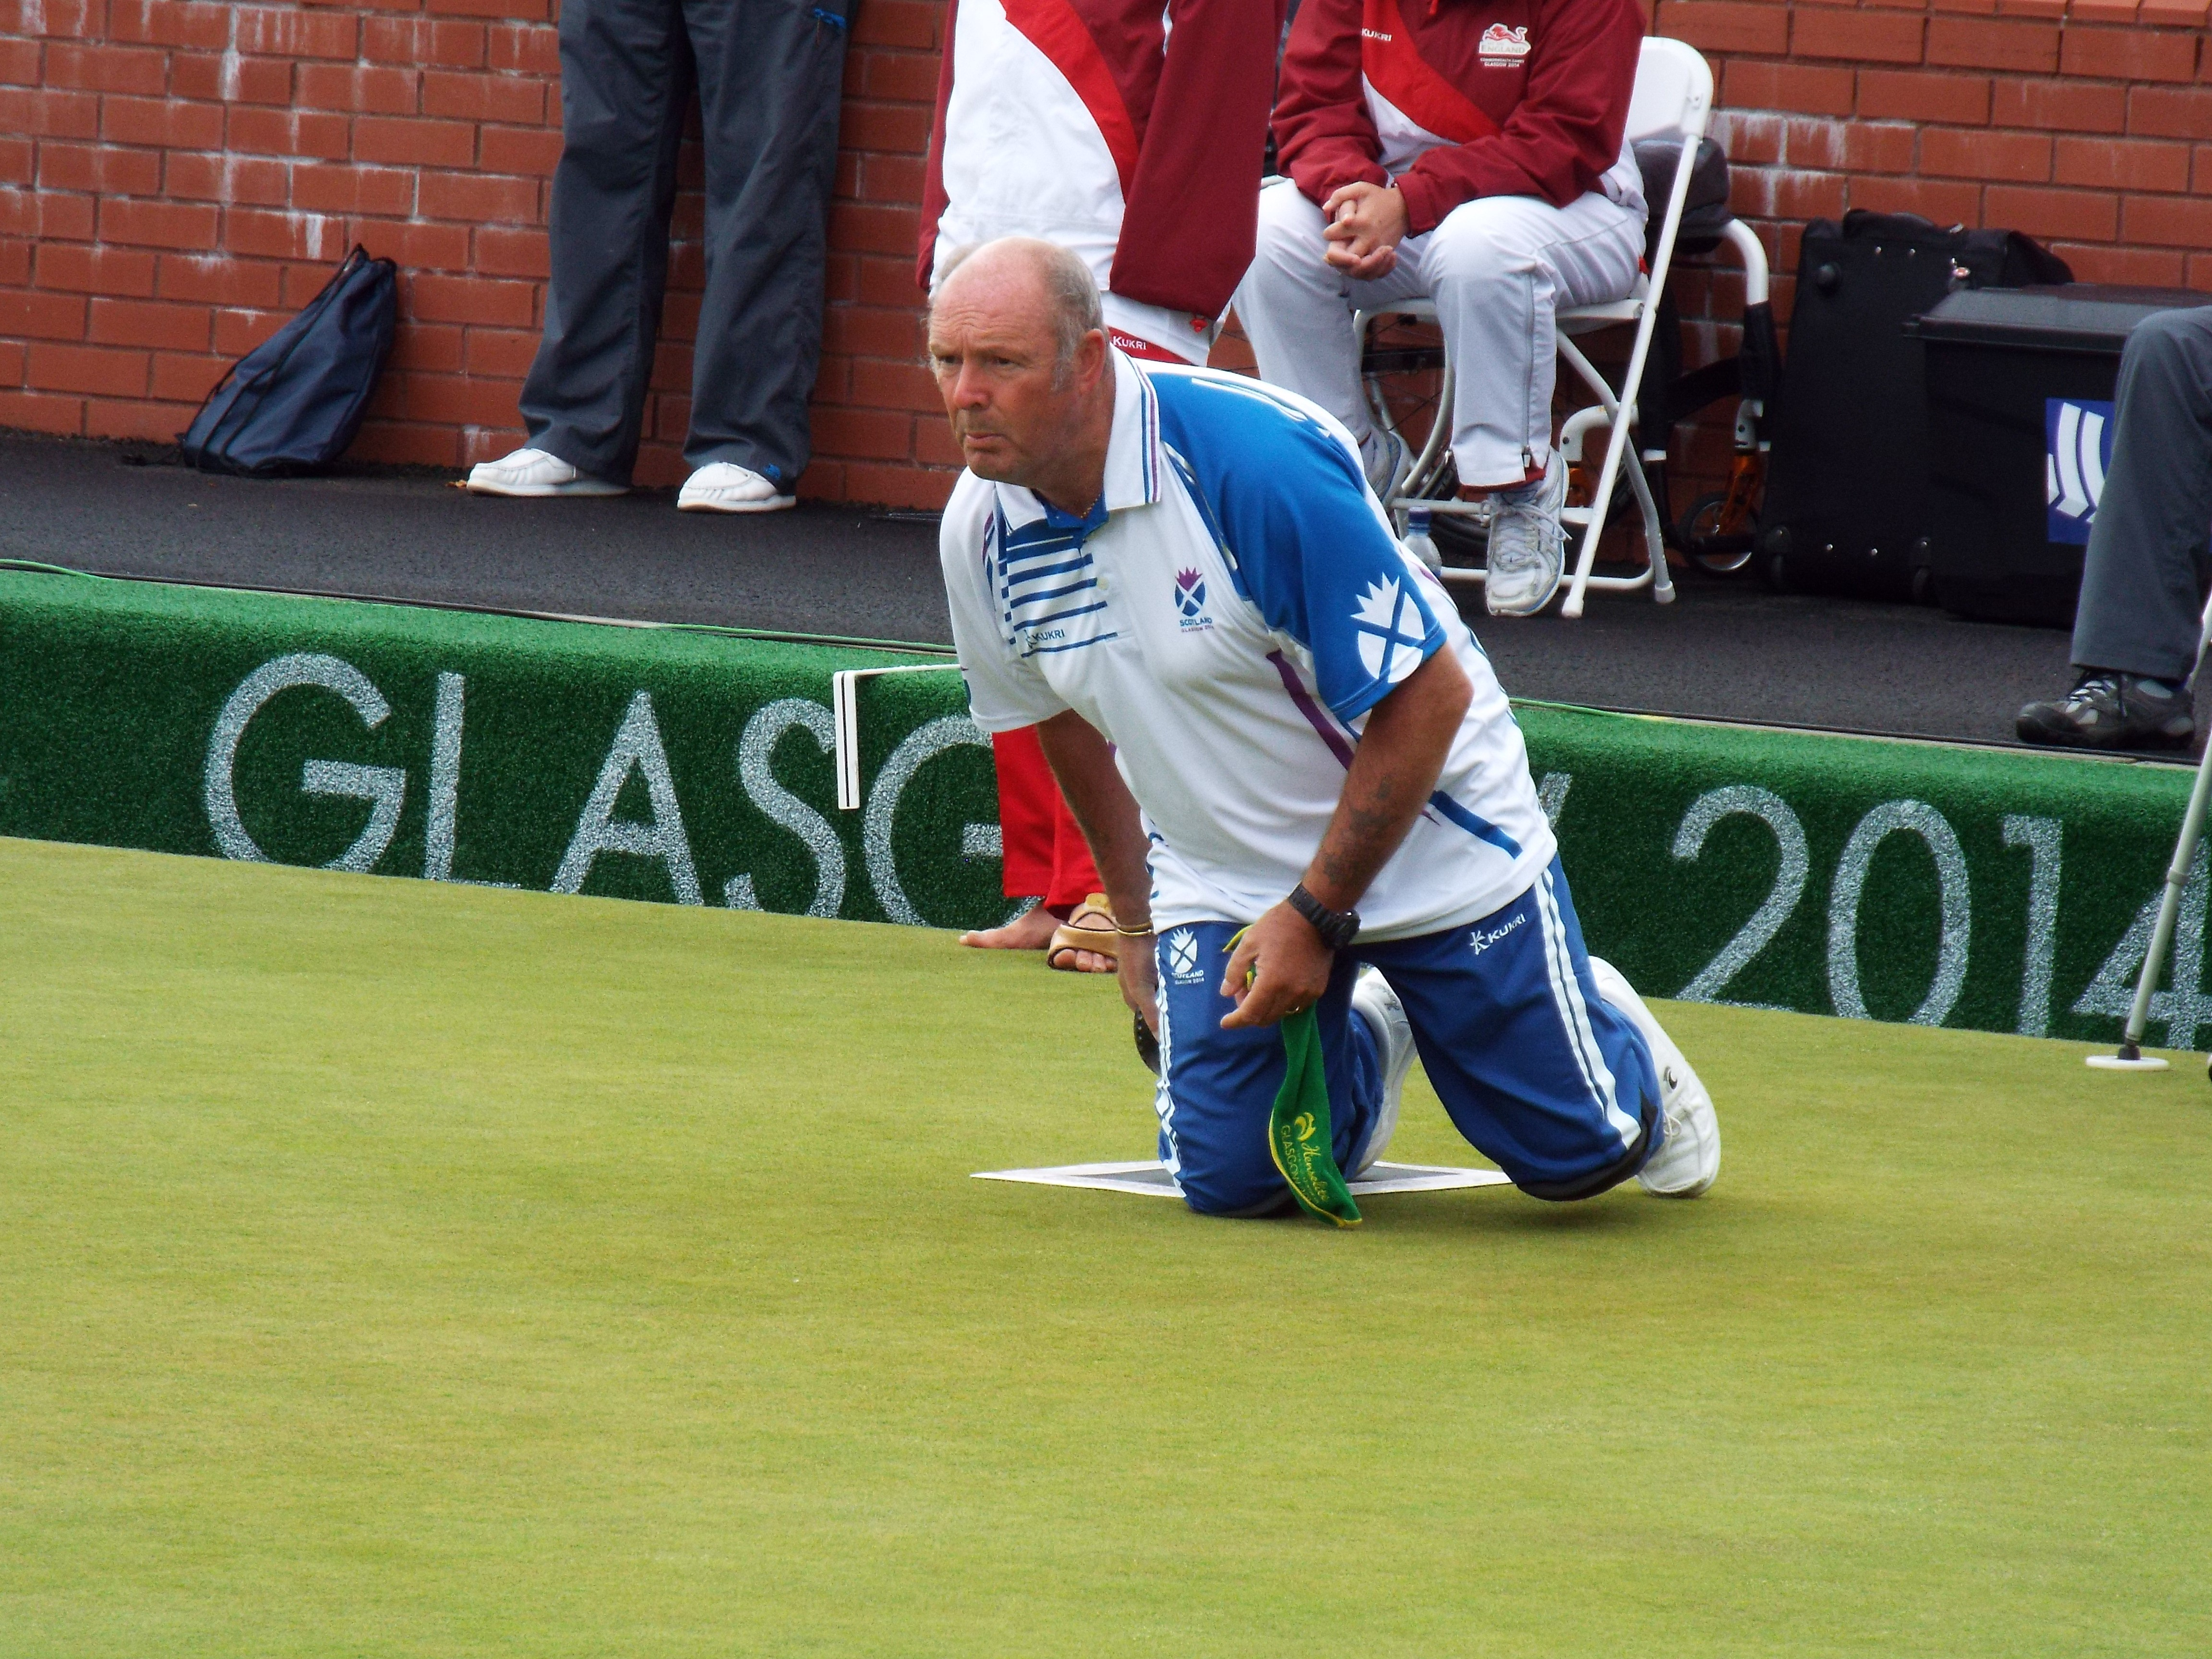 East of Scotland Para Bowls Development Day